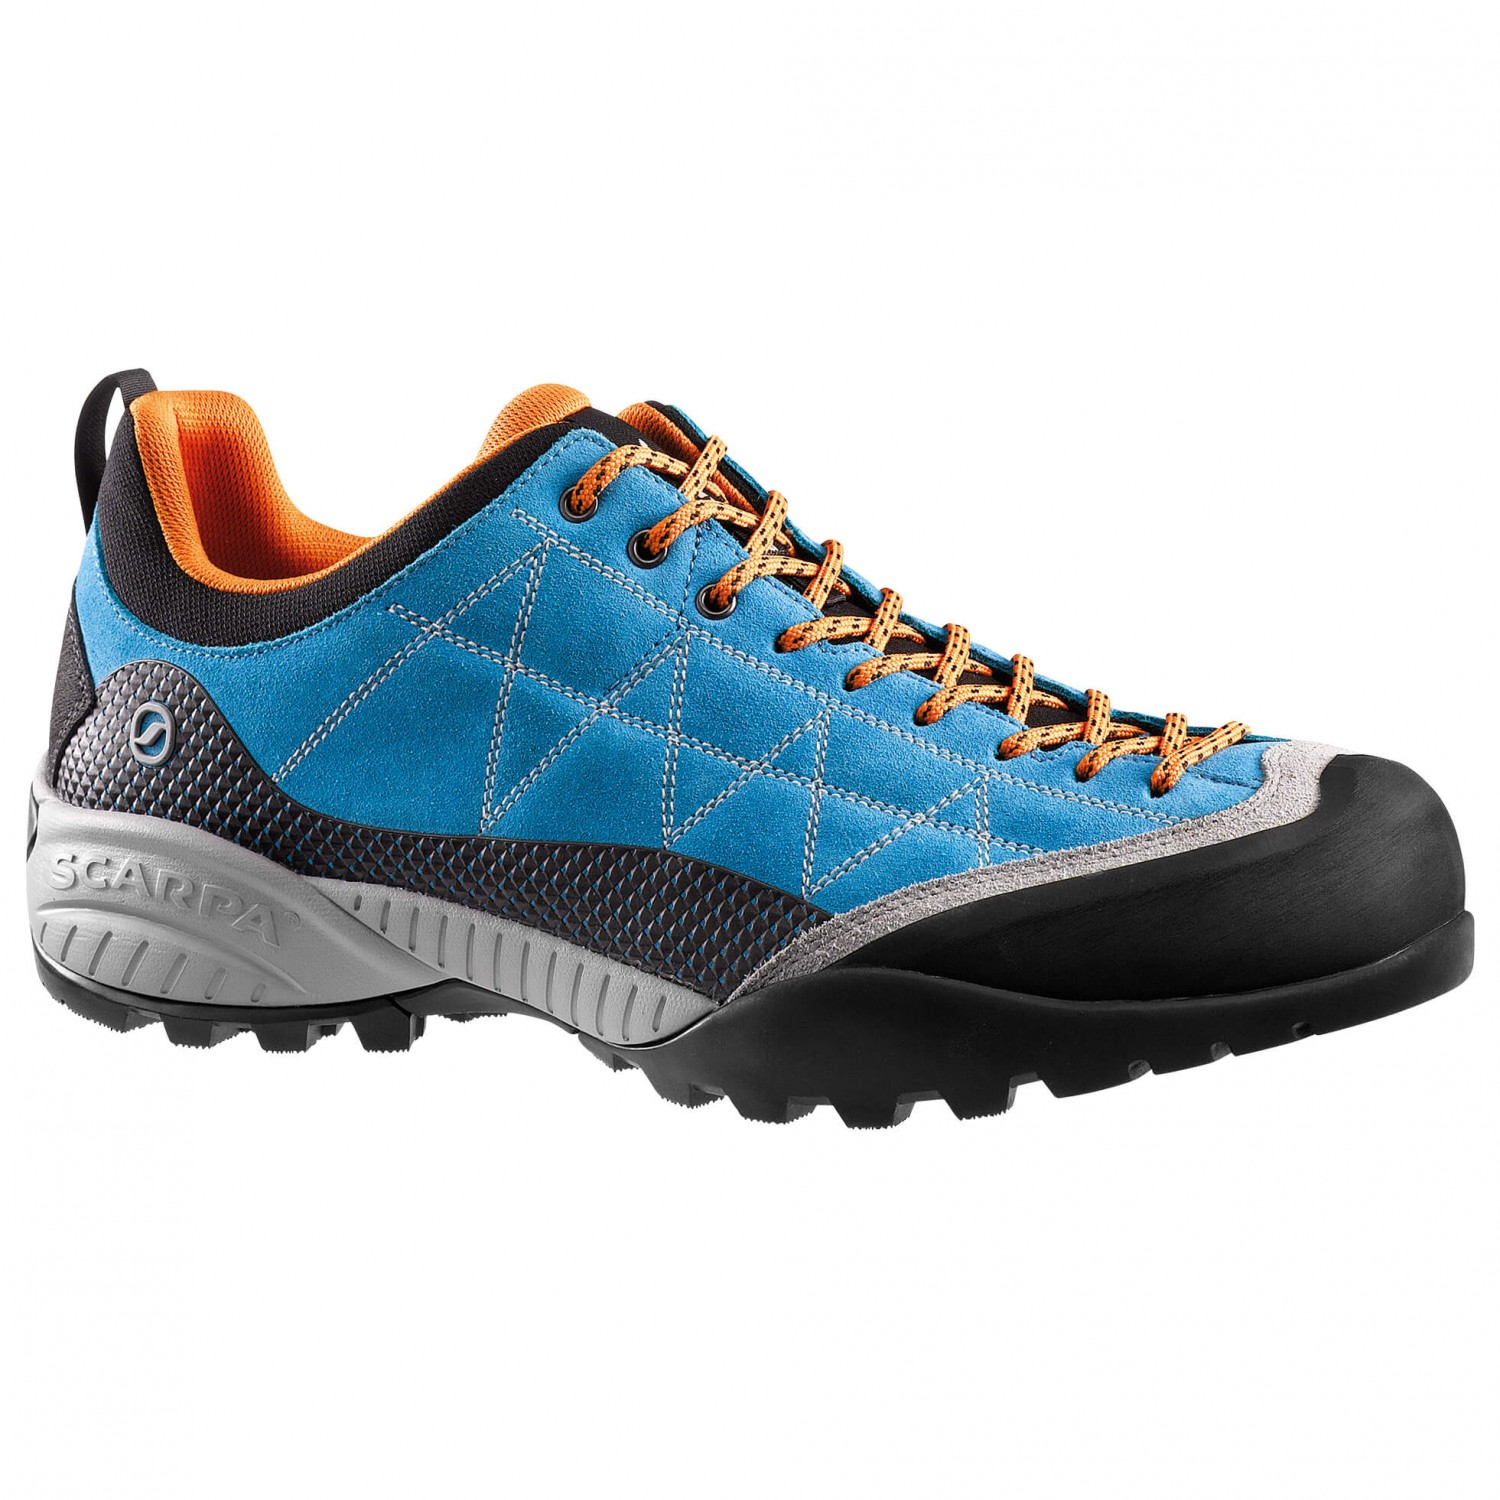 official excellent quality really cheap Scarpa Zen Pro - Approach shoes Men's | Free EU Delivery ...